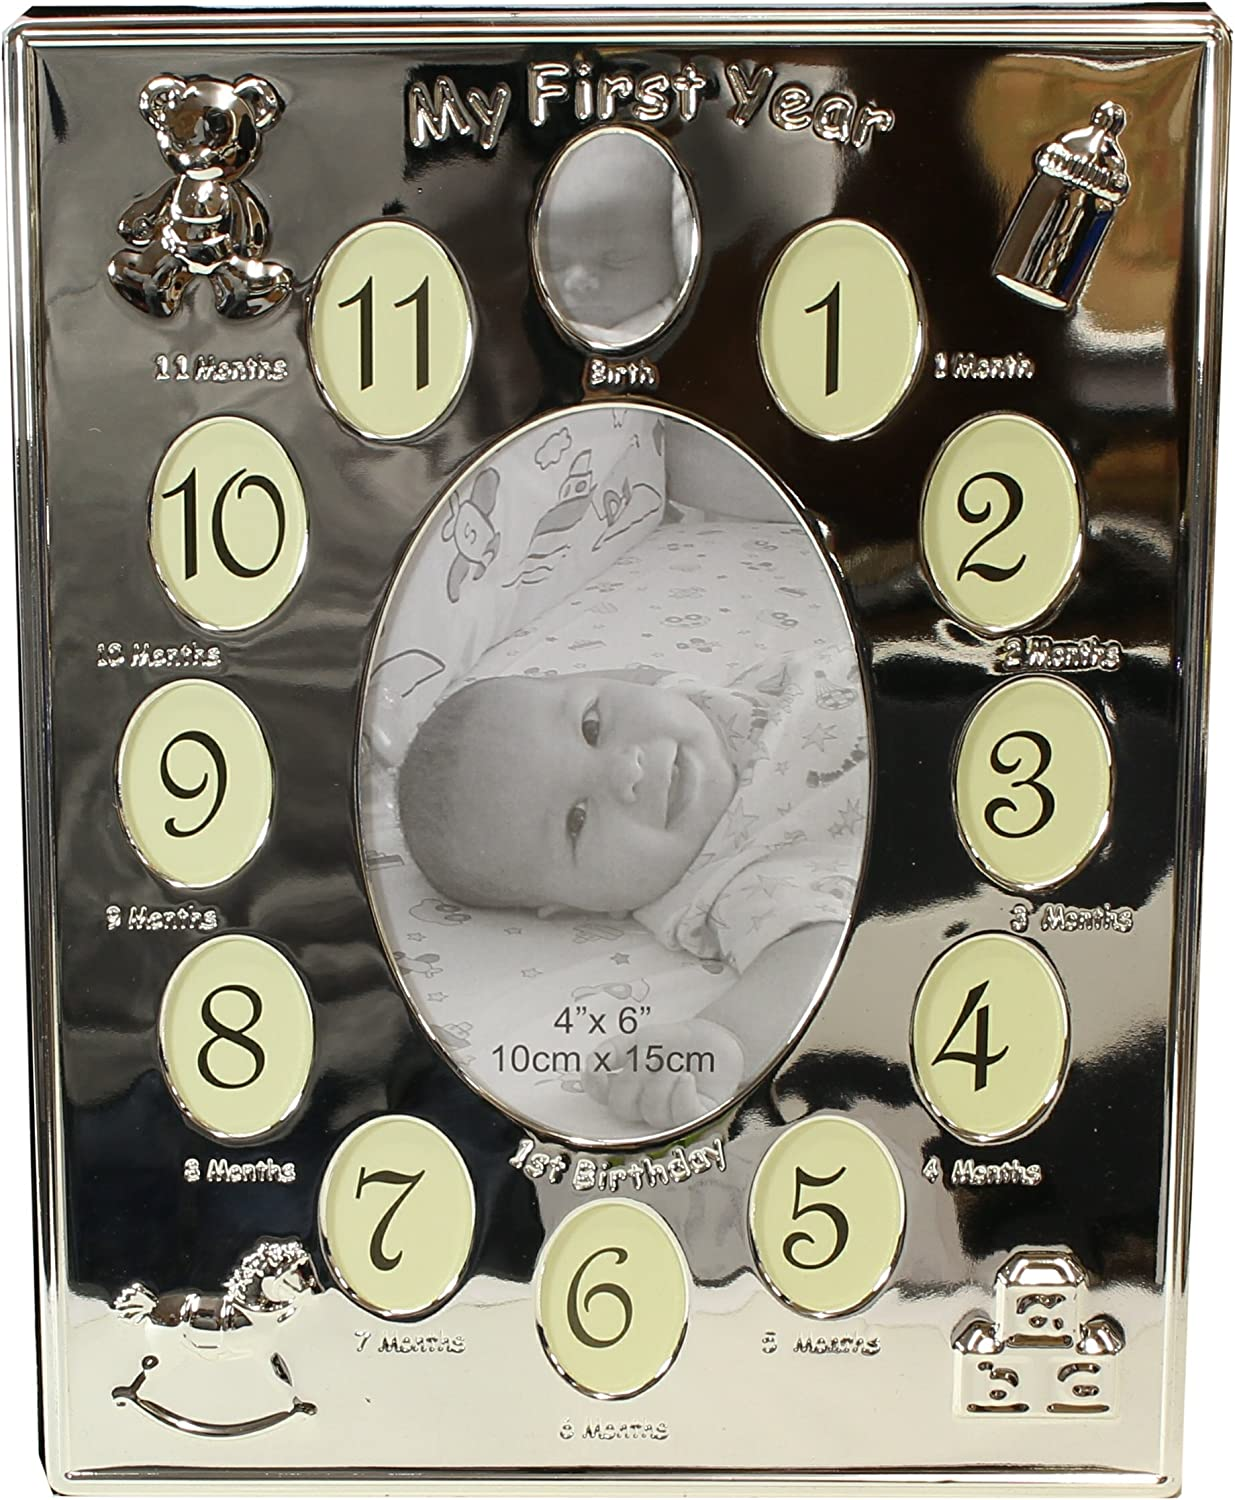 benerini Silver Plated My First Year Expressions Photo Frame Babys First Birthday Christening Gift – Holds 13 Photos